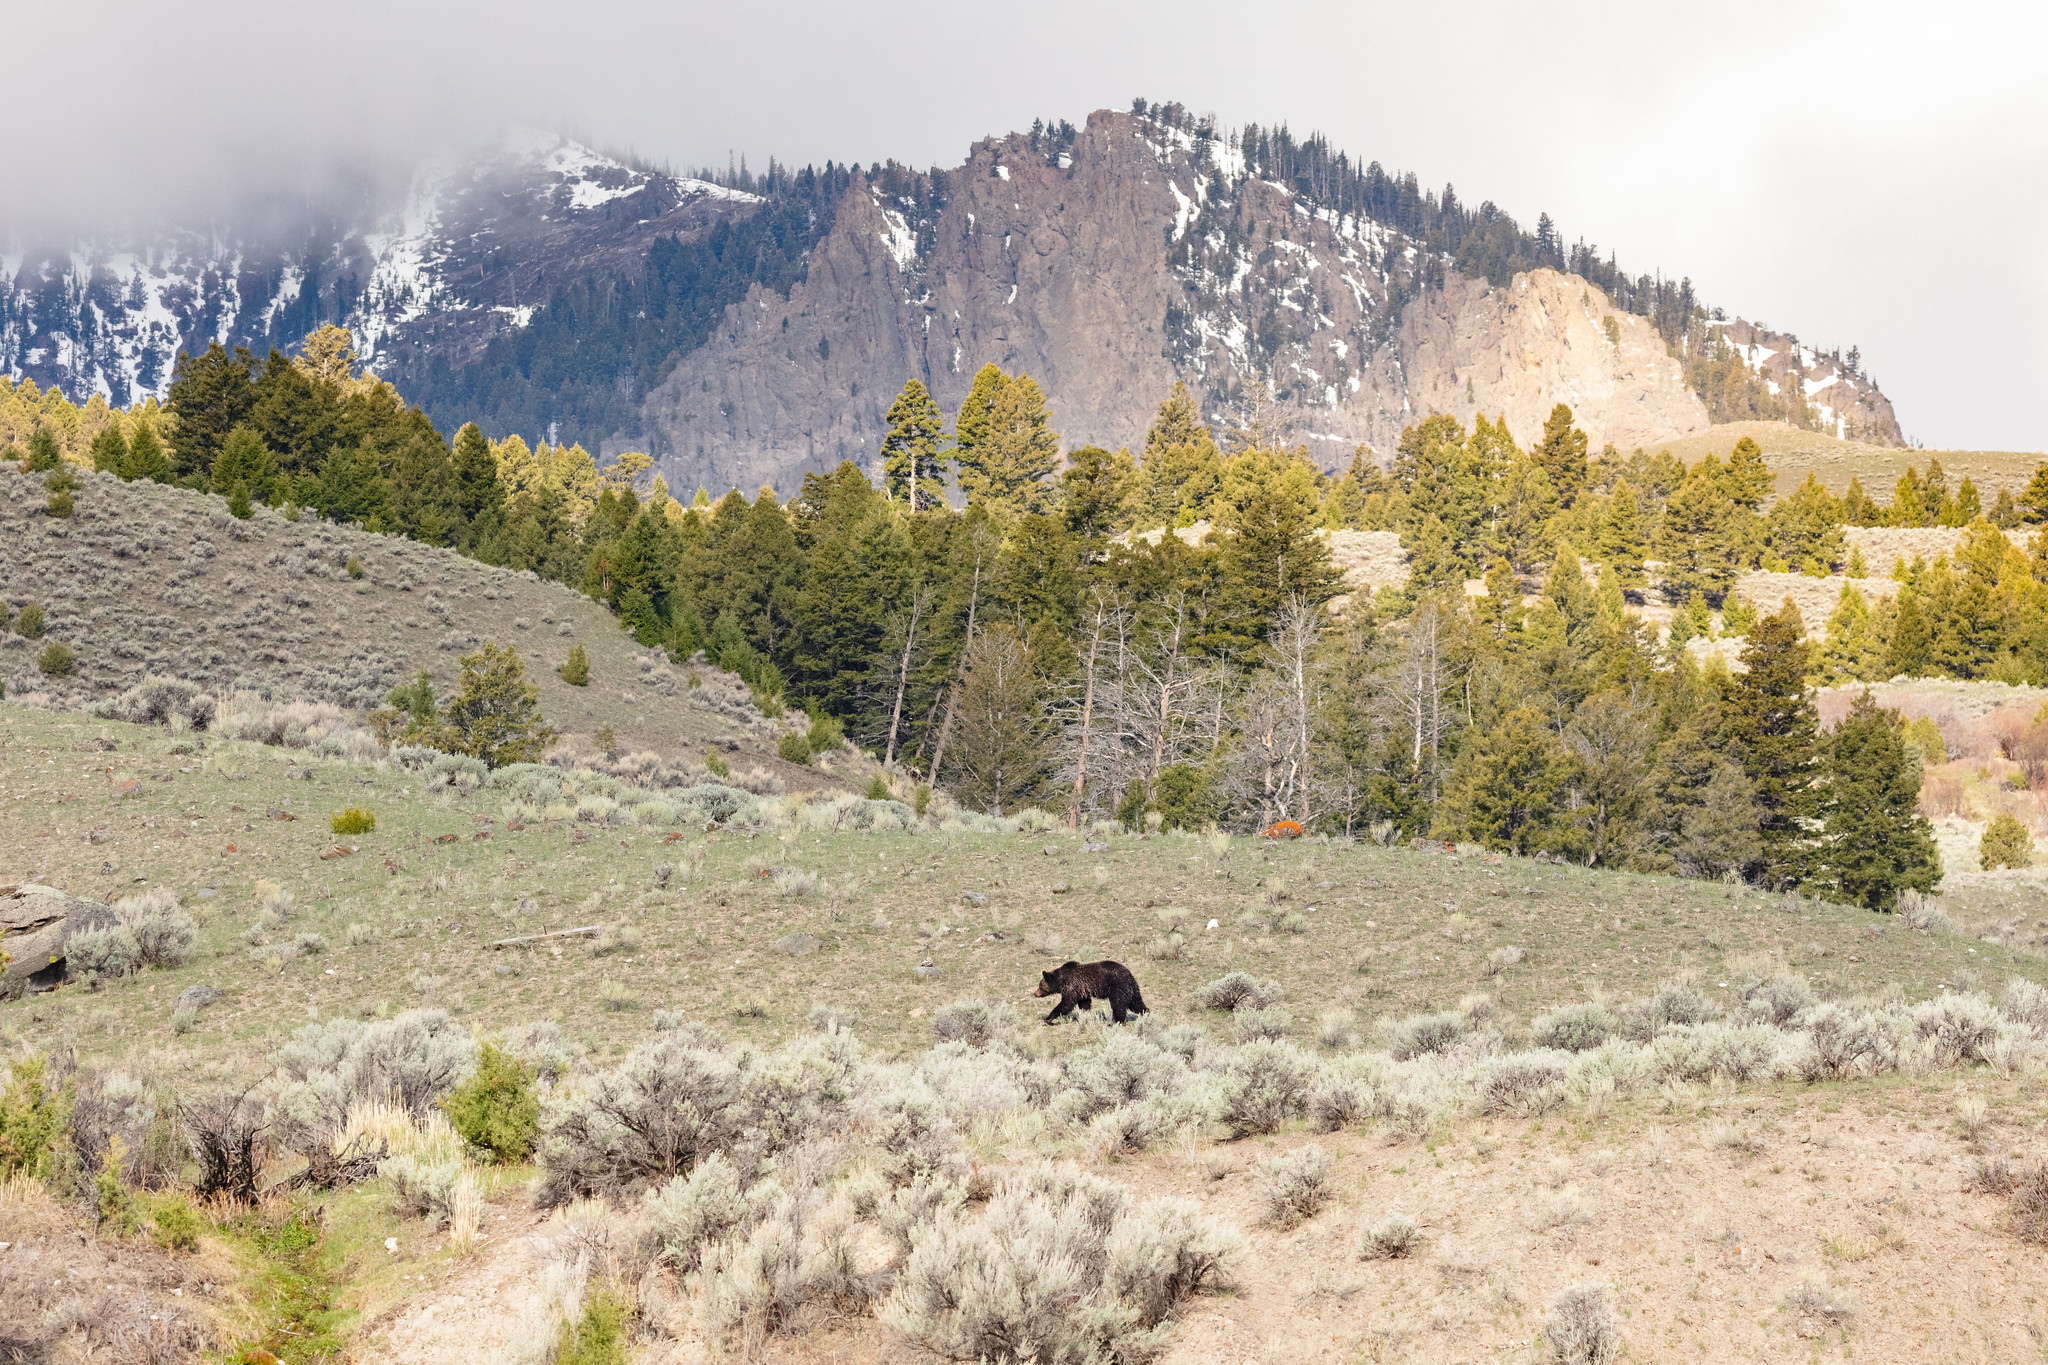 A grizzly bear walks above the Gardner River near the Boiling River parking area in Yellowstone National Park in an undated photo released by the National Park Service.